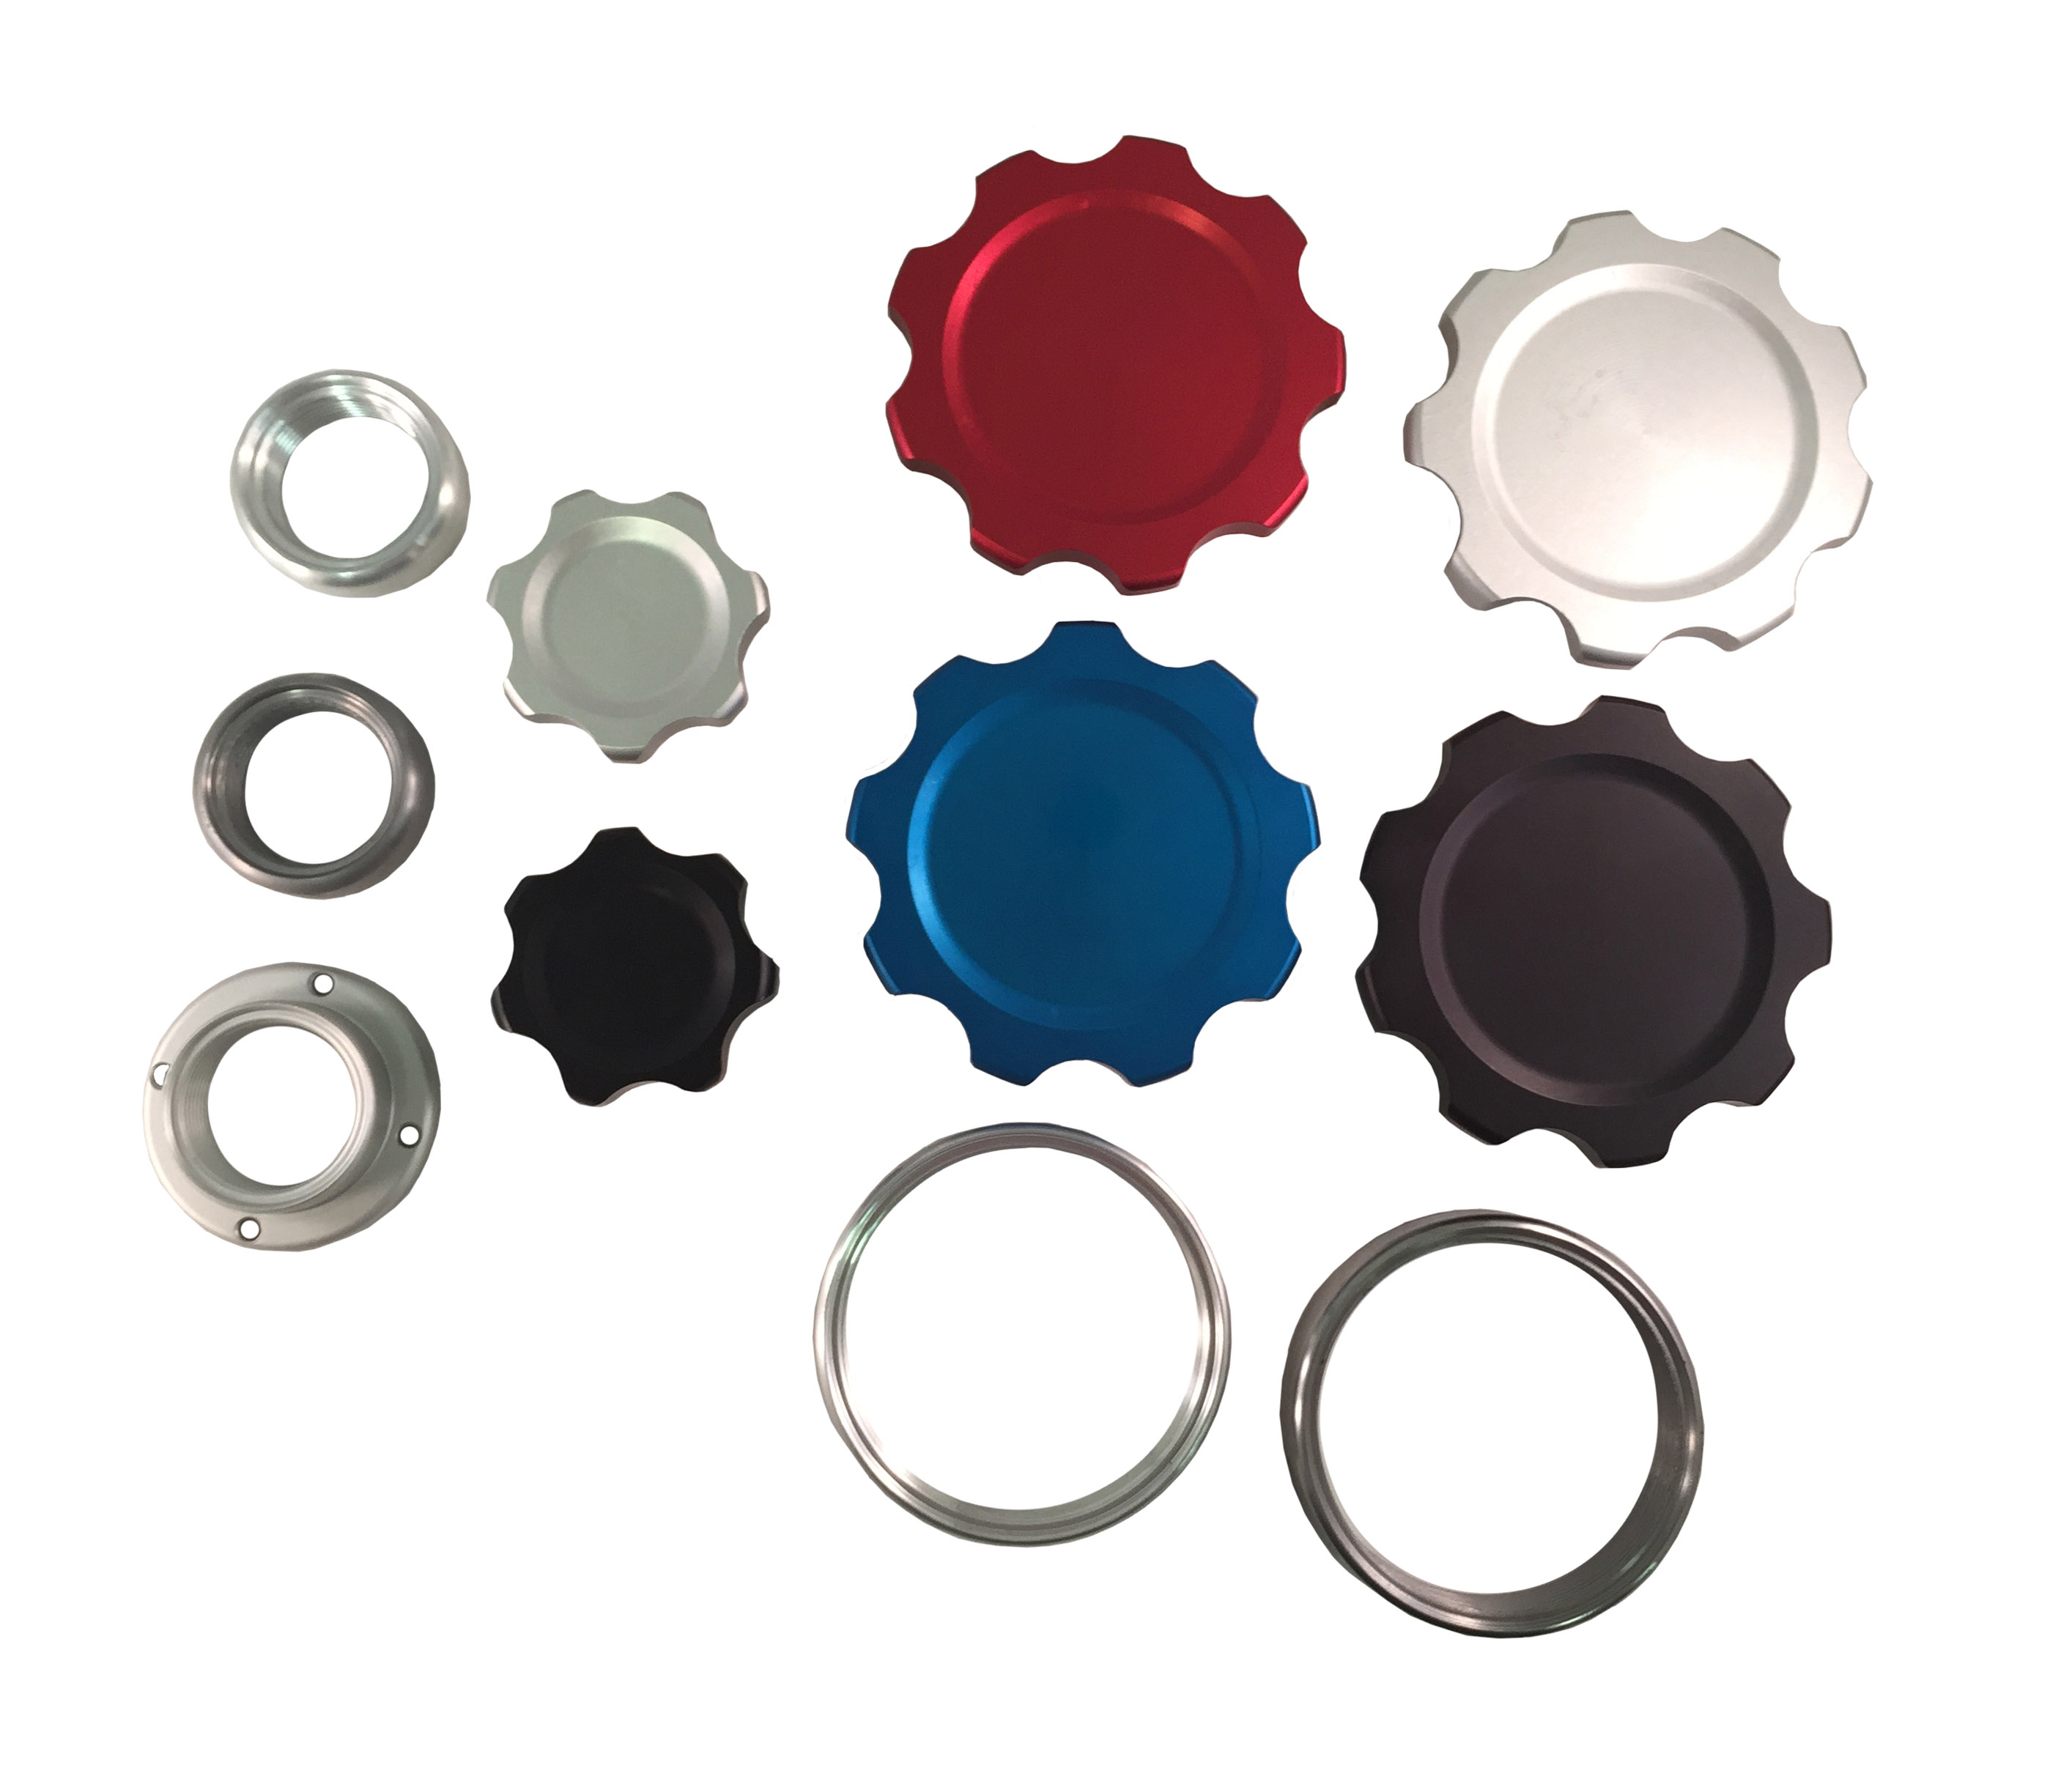 Billet Filler Cap Kits